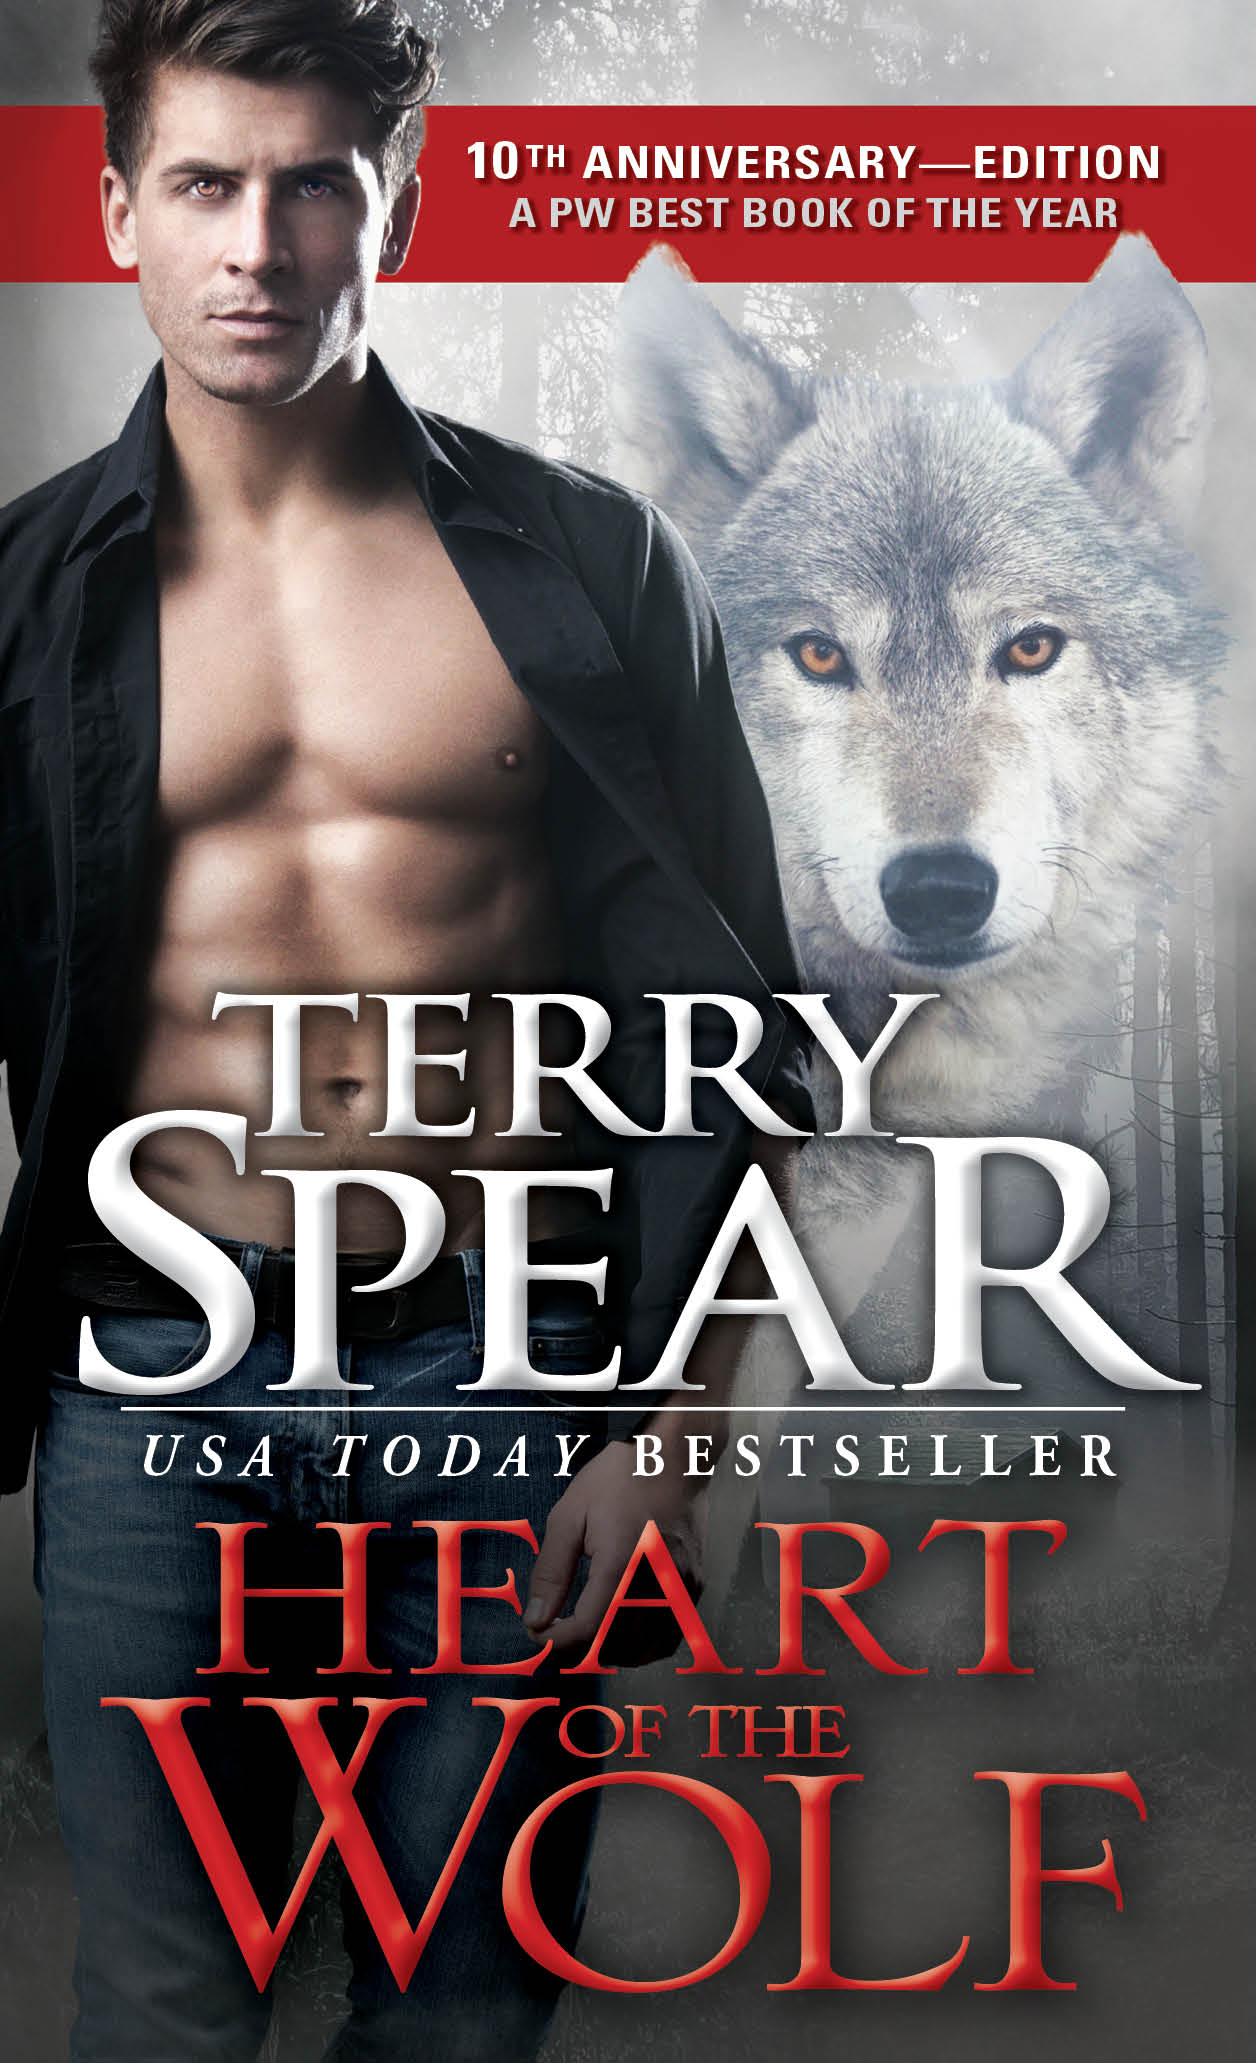 Heart of the Wolf 10th anniversary cover